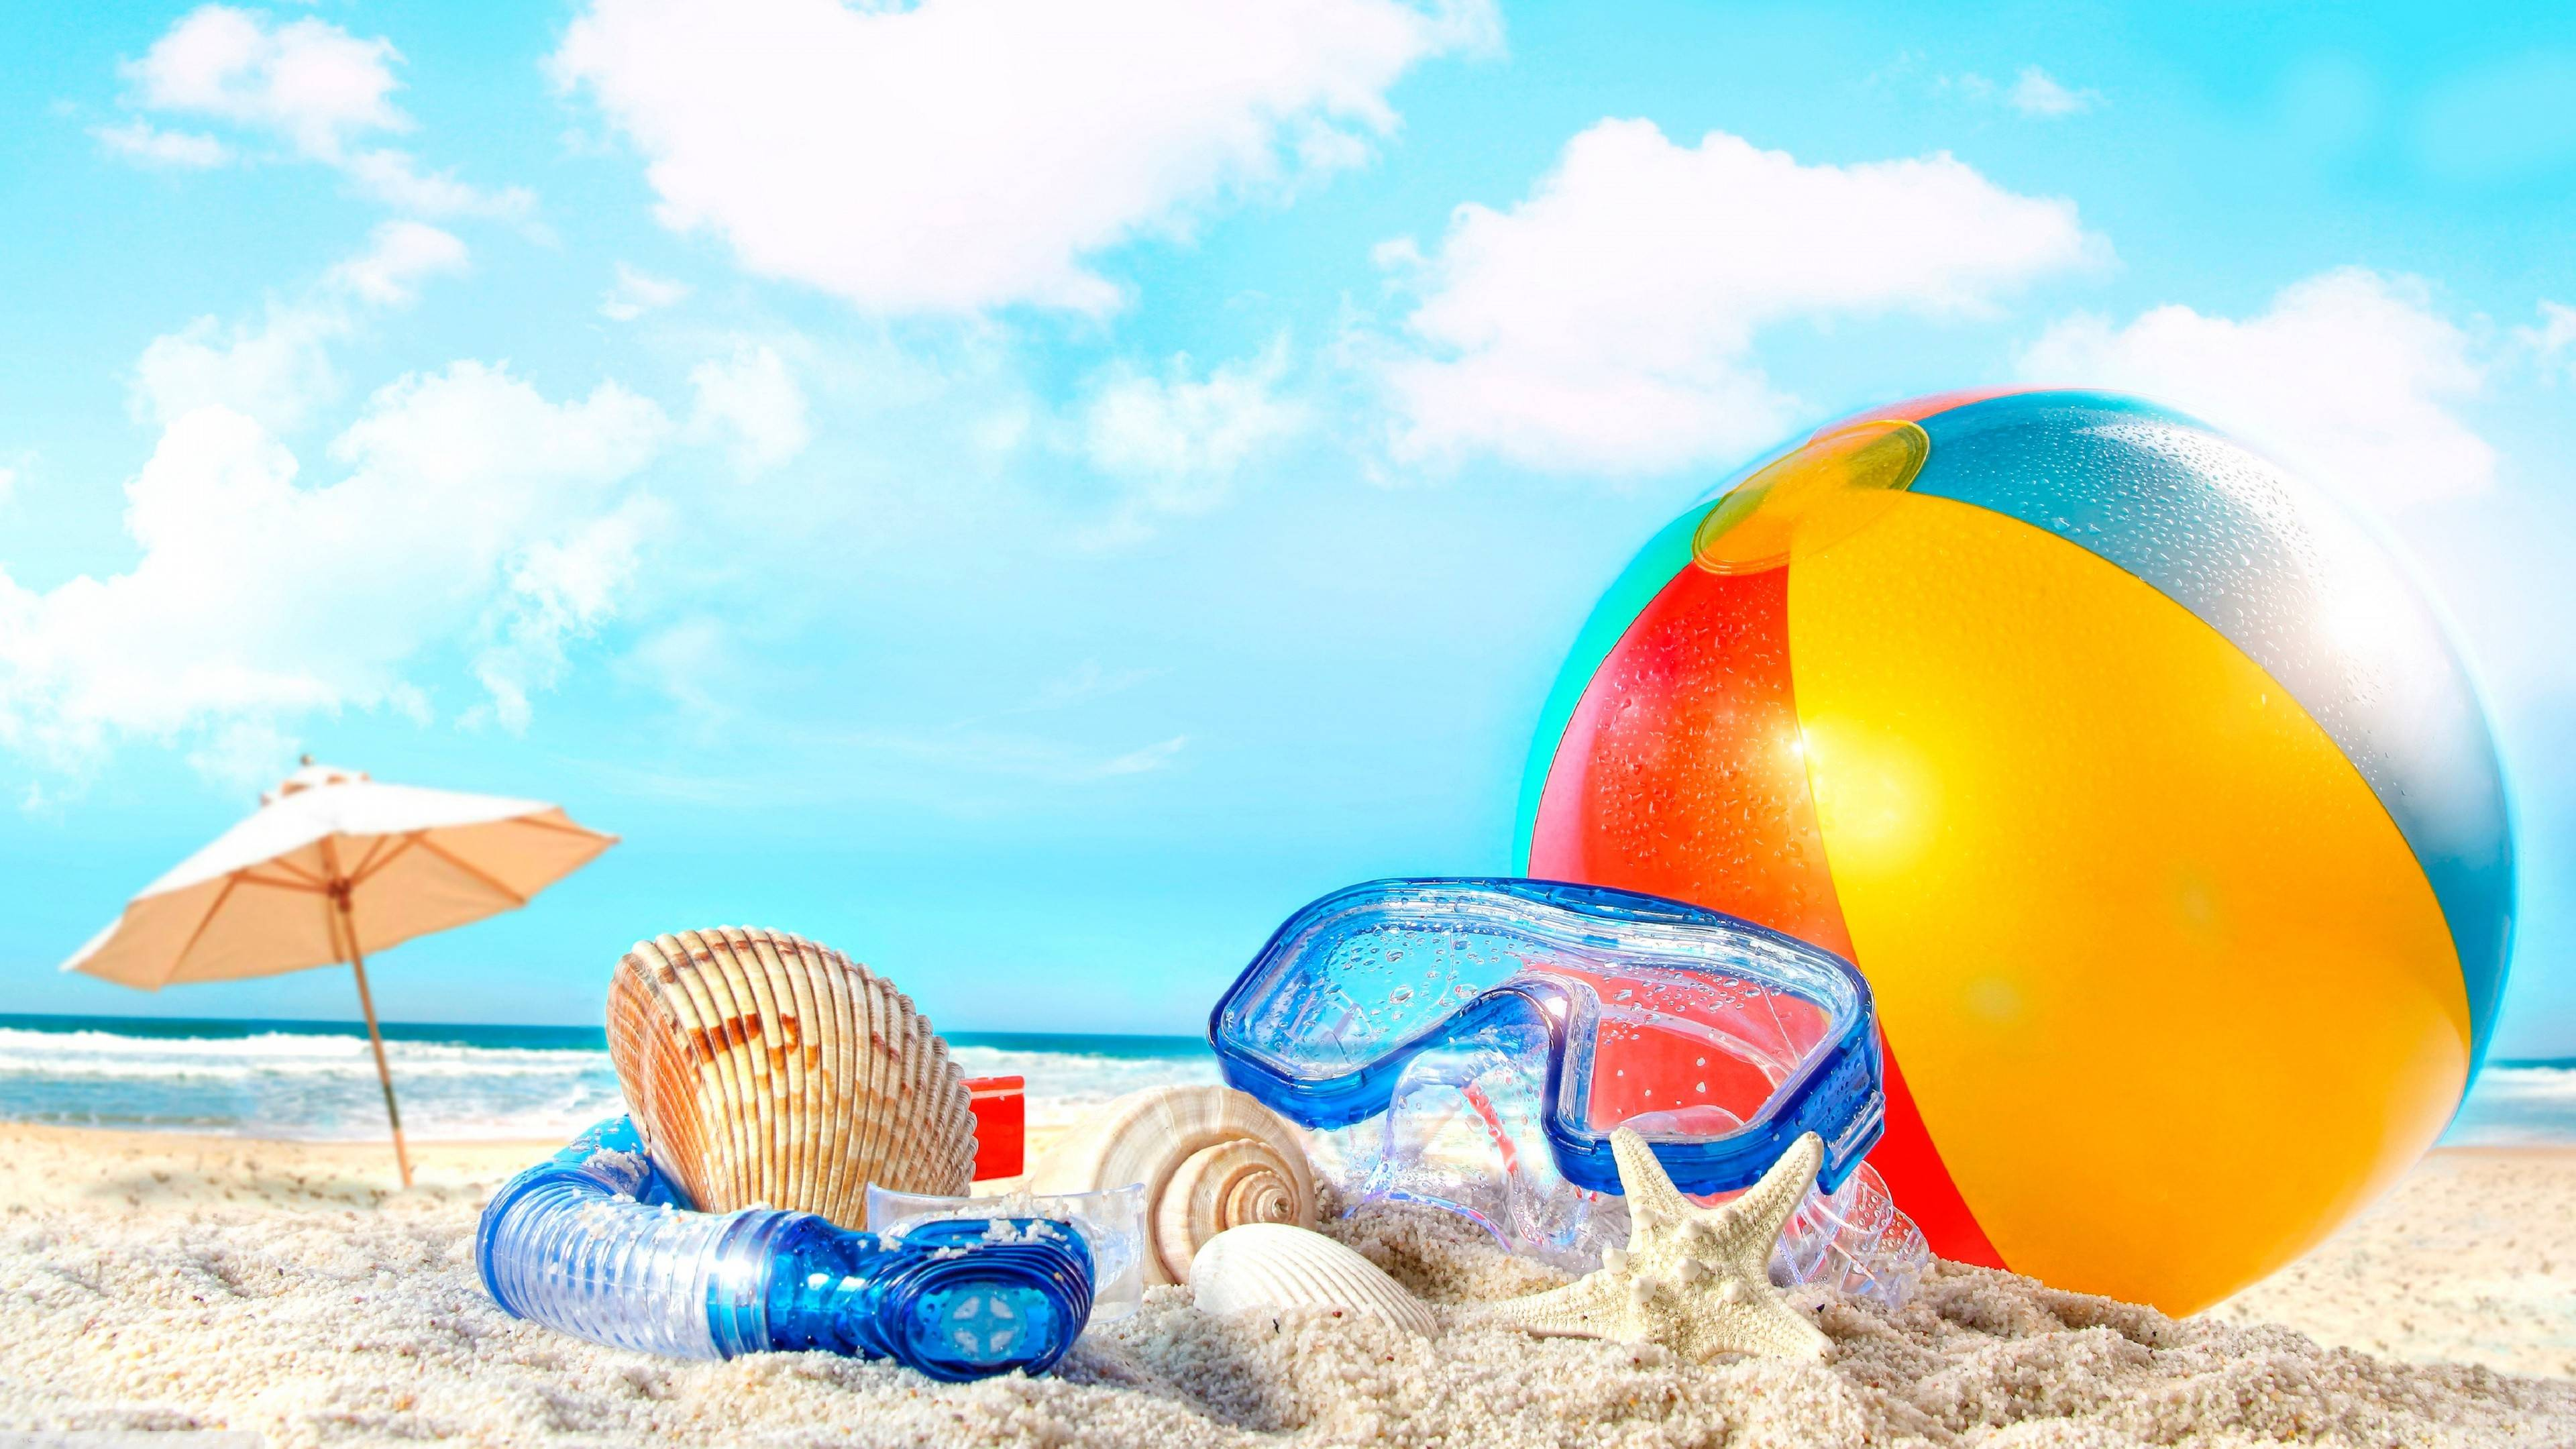 Summer Backgrounds Wallpapers 3840x2160